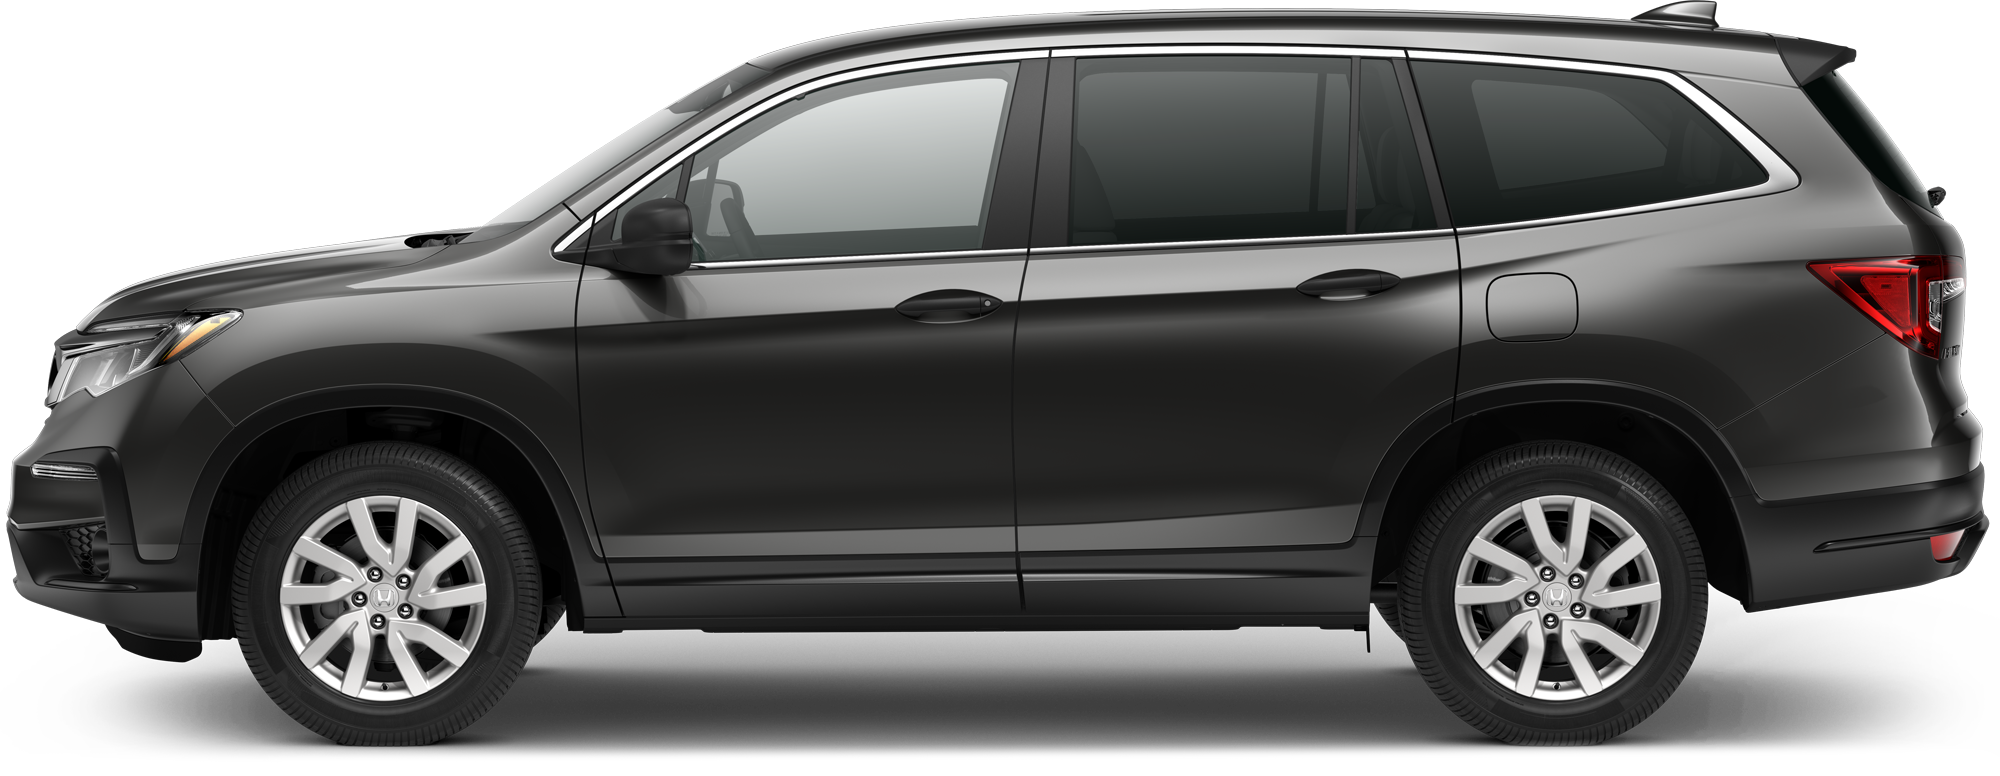 2021 Honda Pilot Finance  Deal